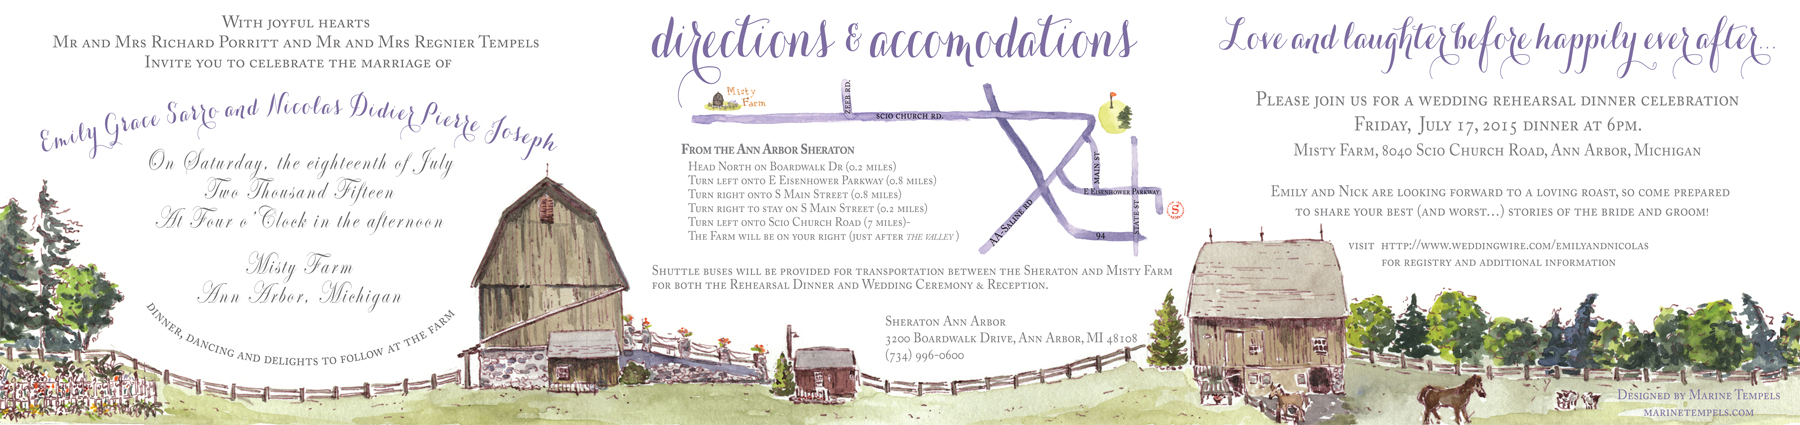 The invitation is a tri-fold panoramic view of the farm where they were married.